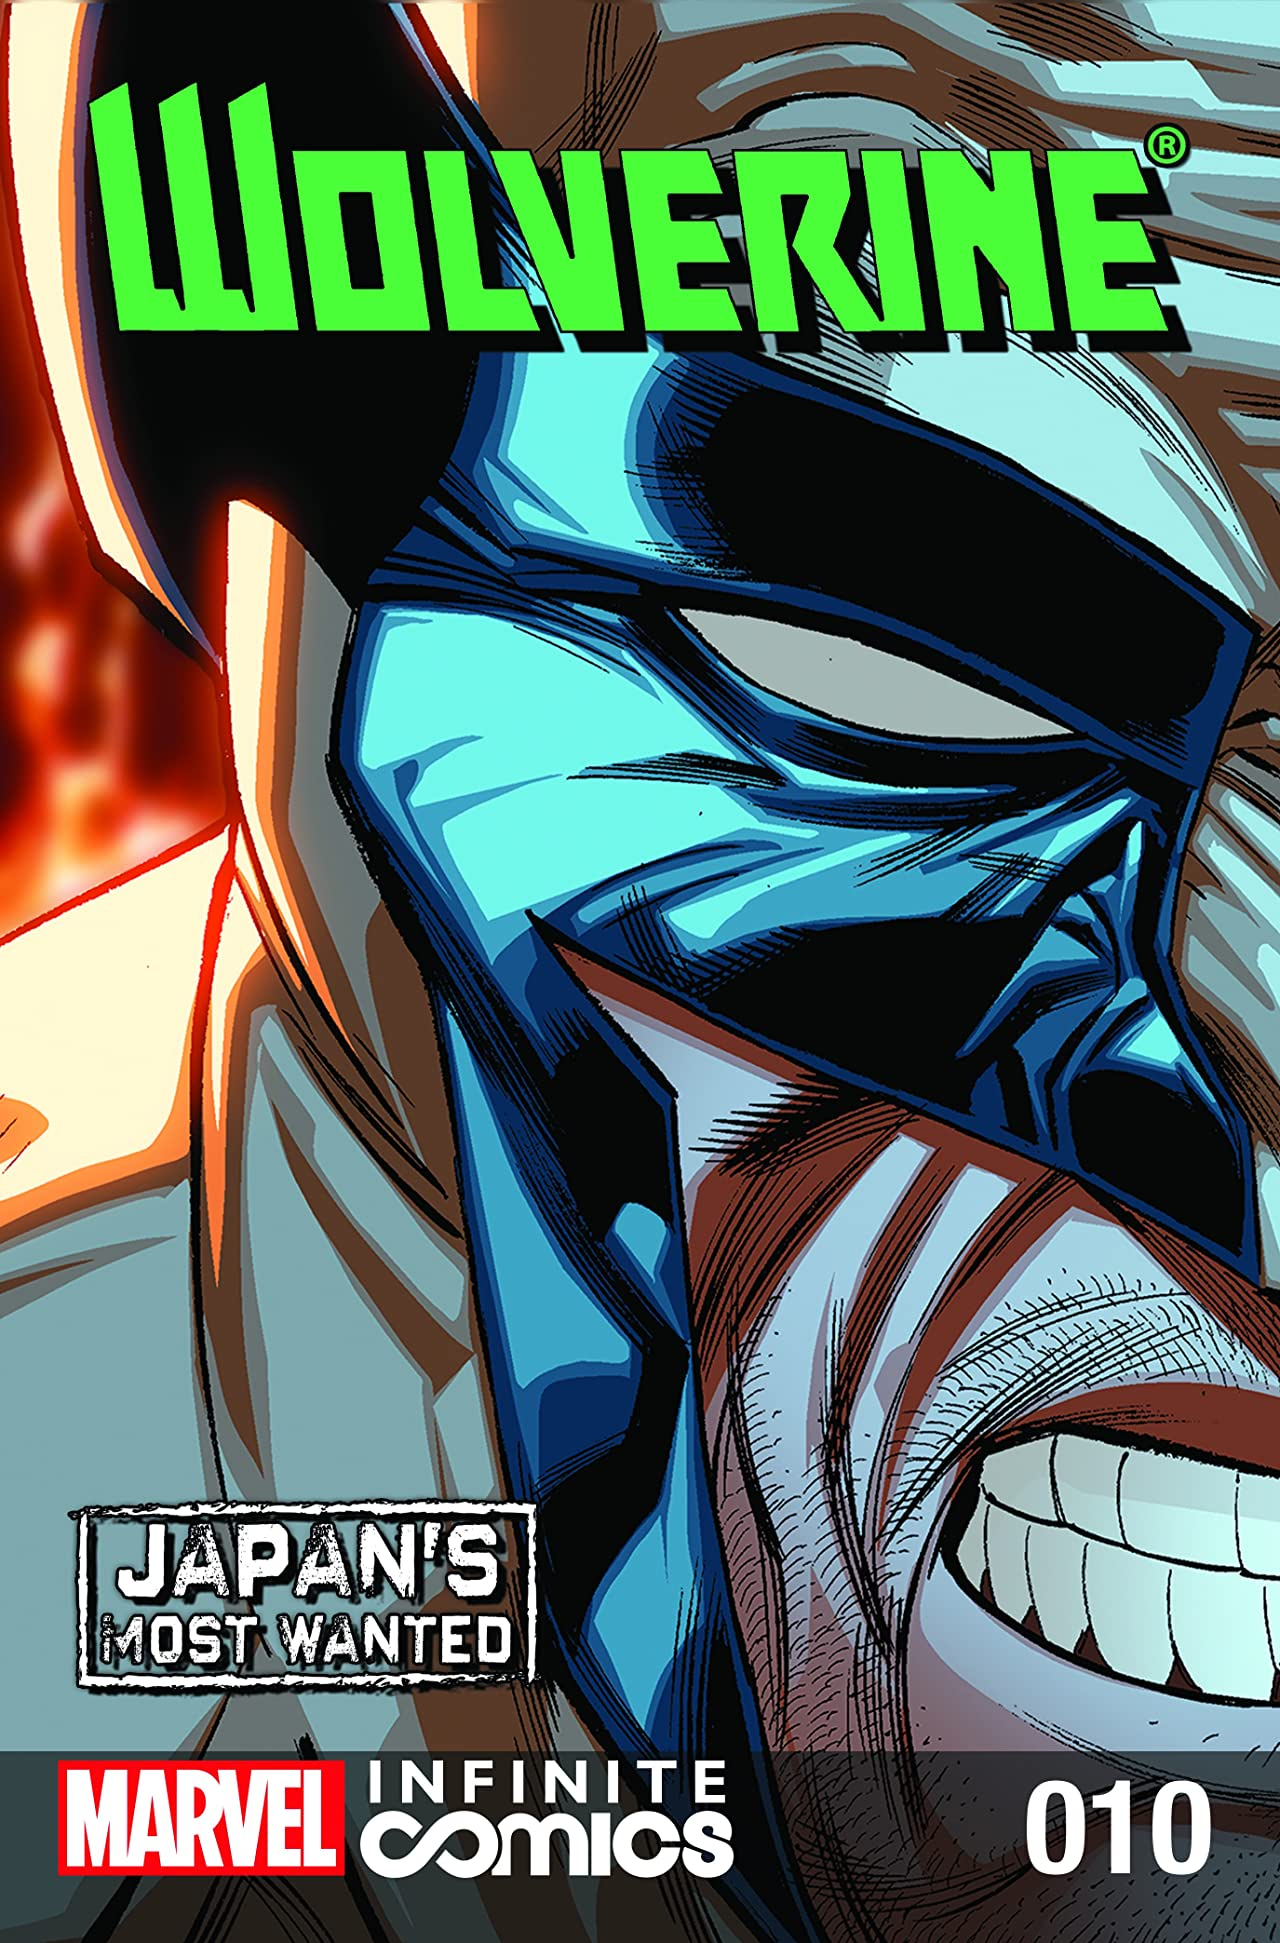 Wolverine: Japan's Most Wanted Infinite Comic #10